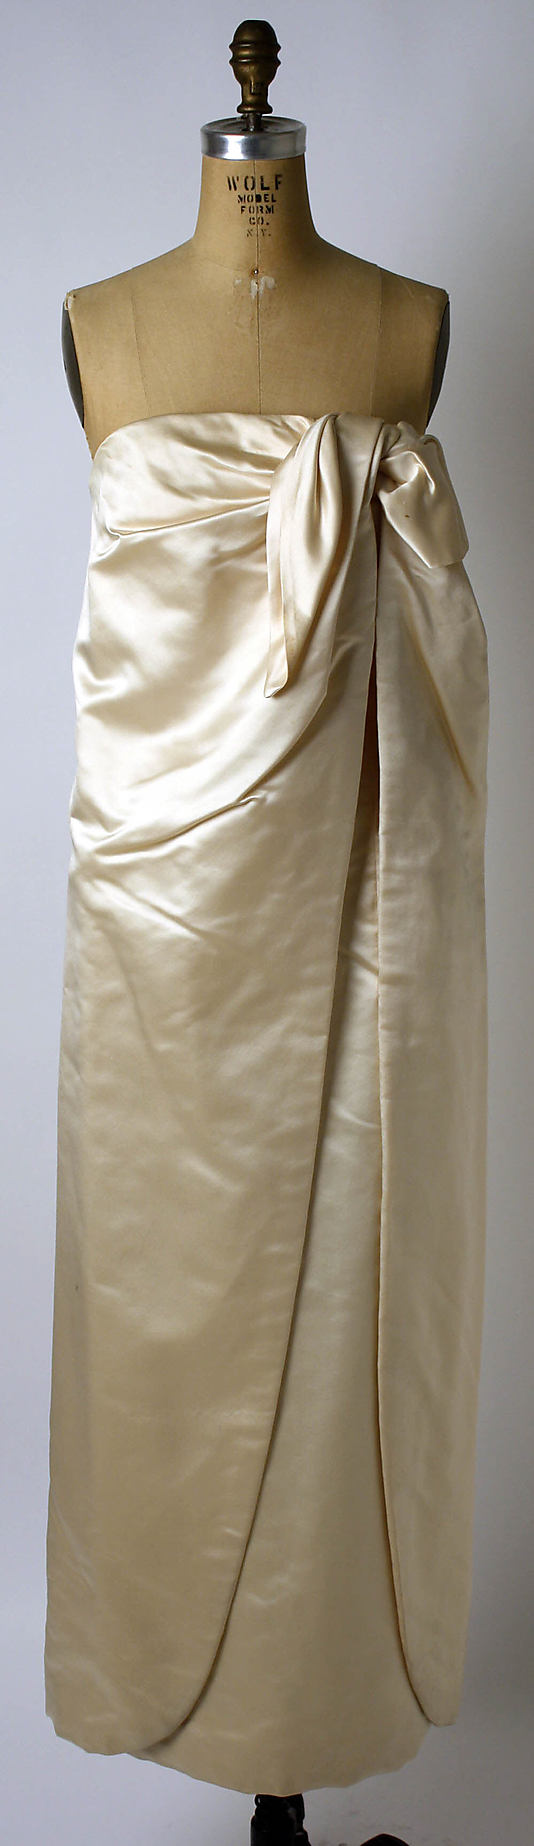 Ivory silk satin strapless evening gown, by George Peter Stavropoulos, American, ca. 1960.